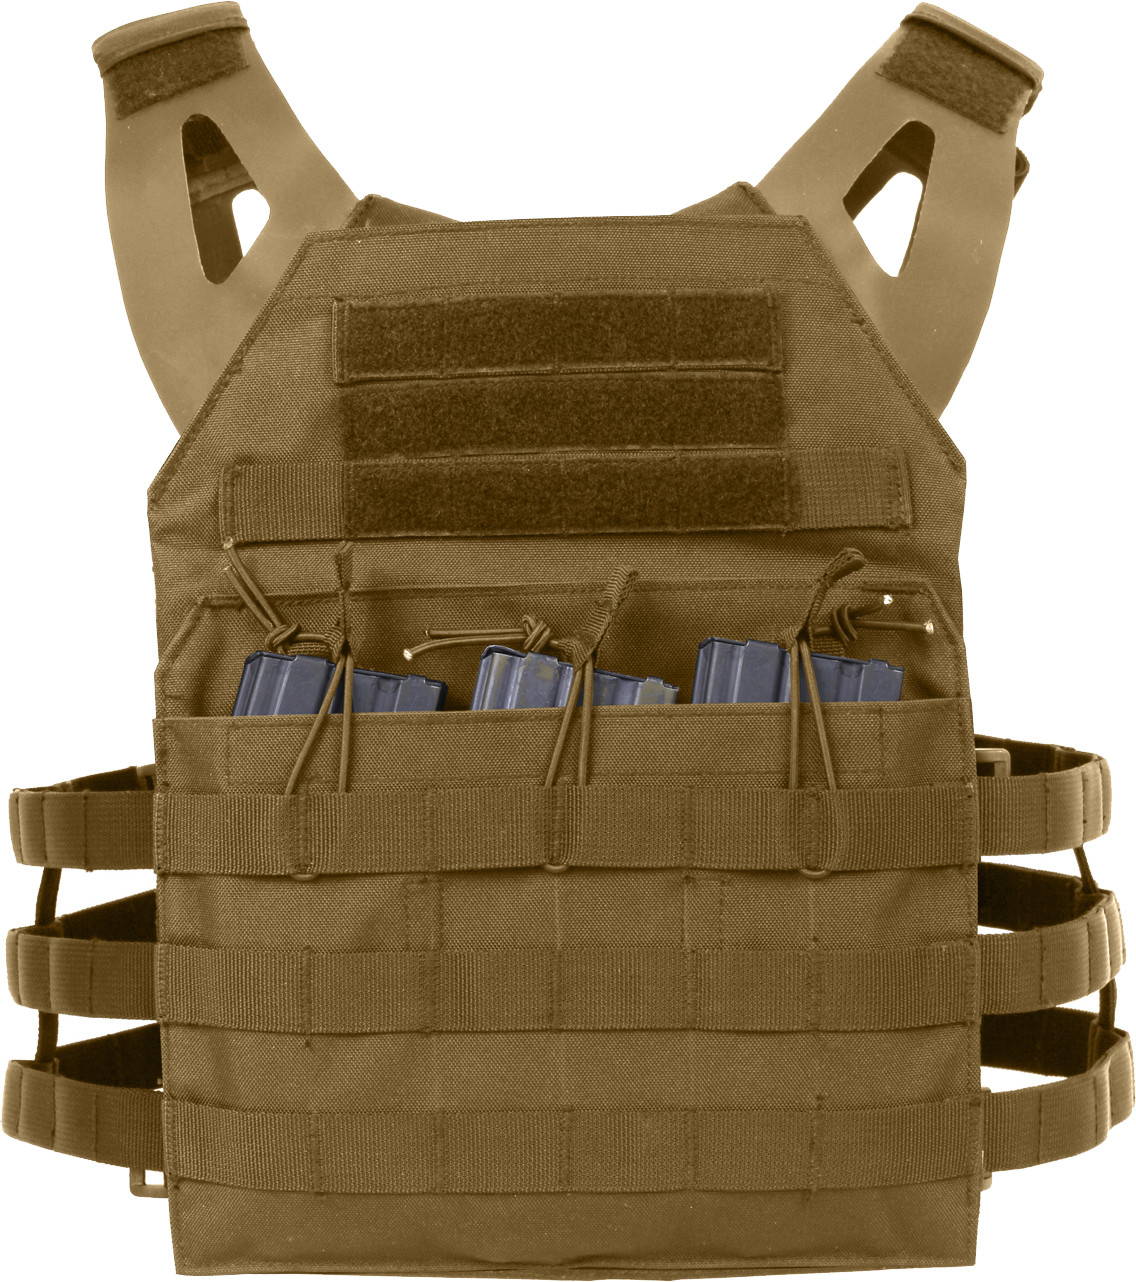 Coyote Brown Lightweight MOLLE Compatible 3 Magazine Pouch ... 4d80059d093